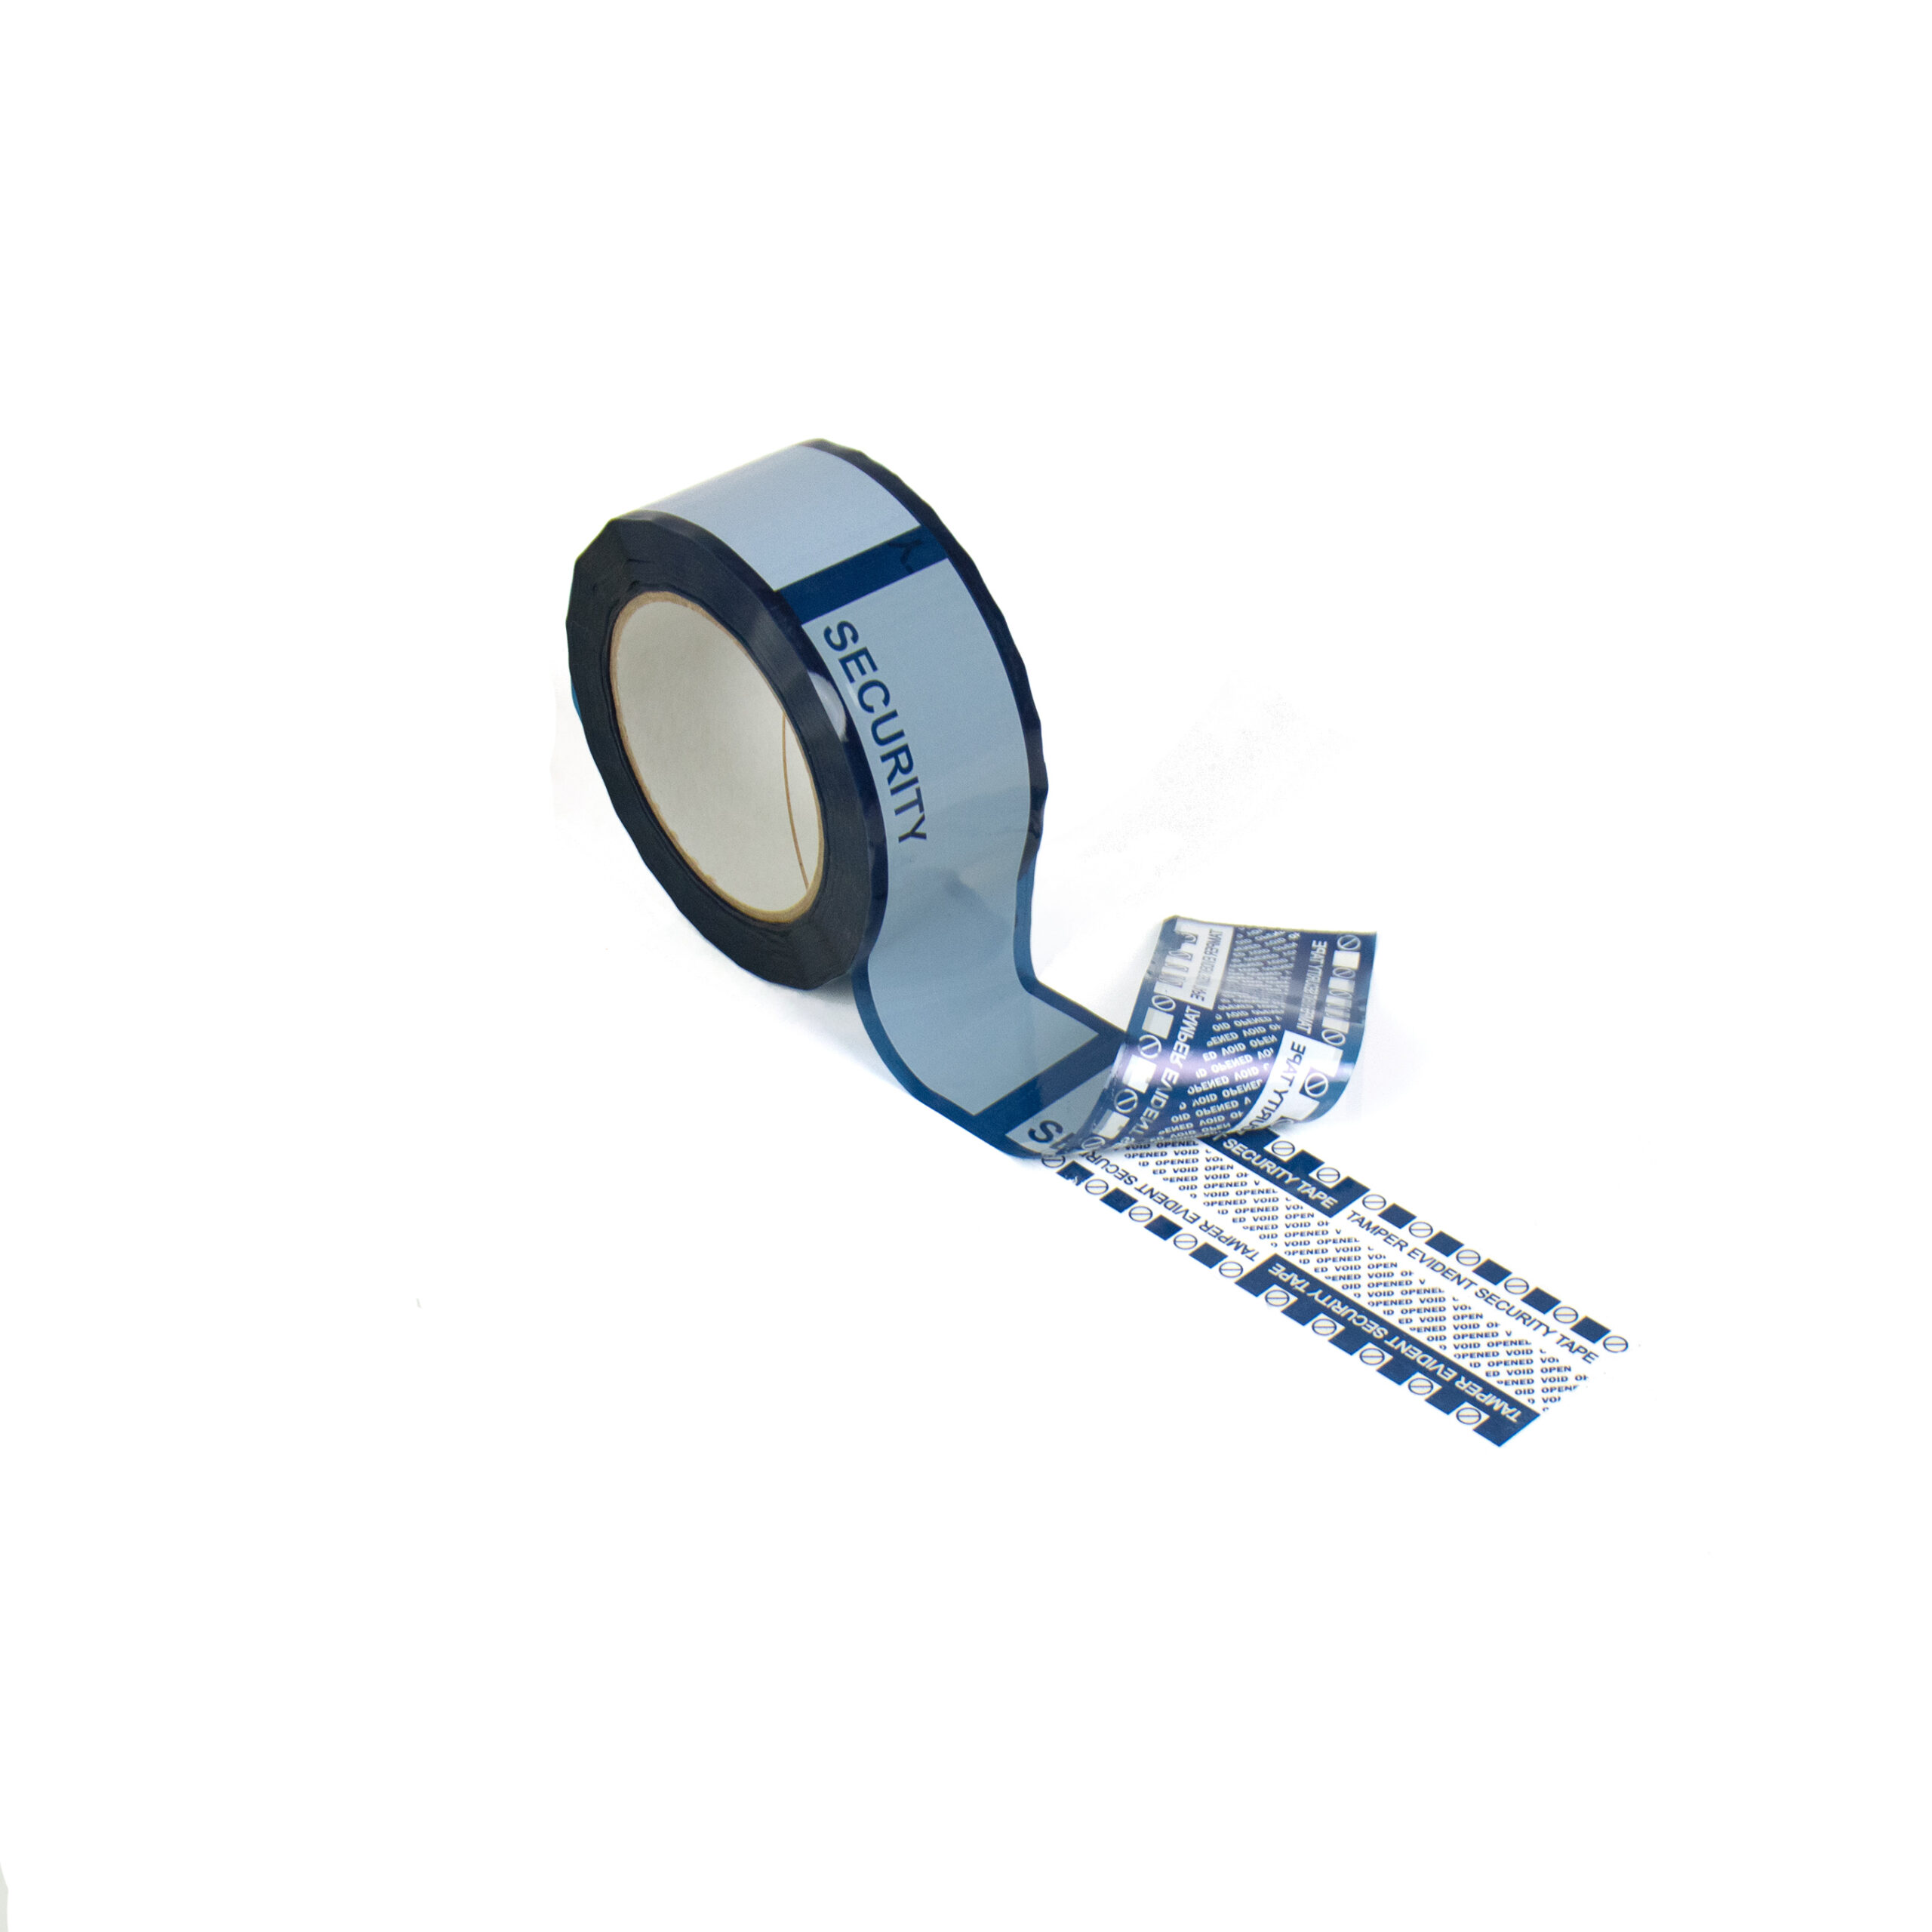 Blue Tamper Evident security Box tape with new standard void message option